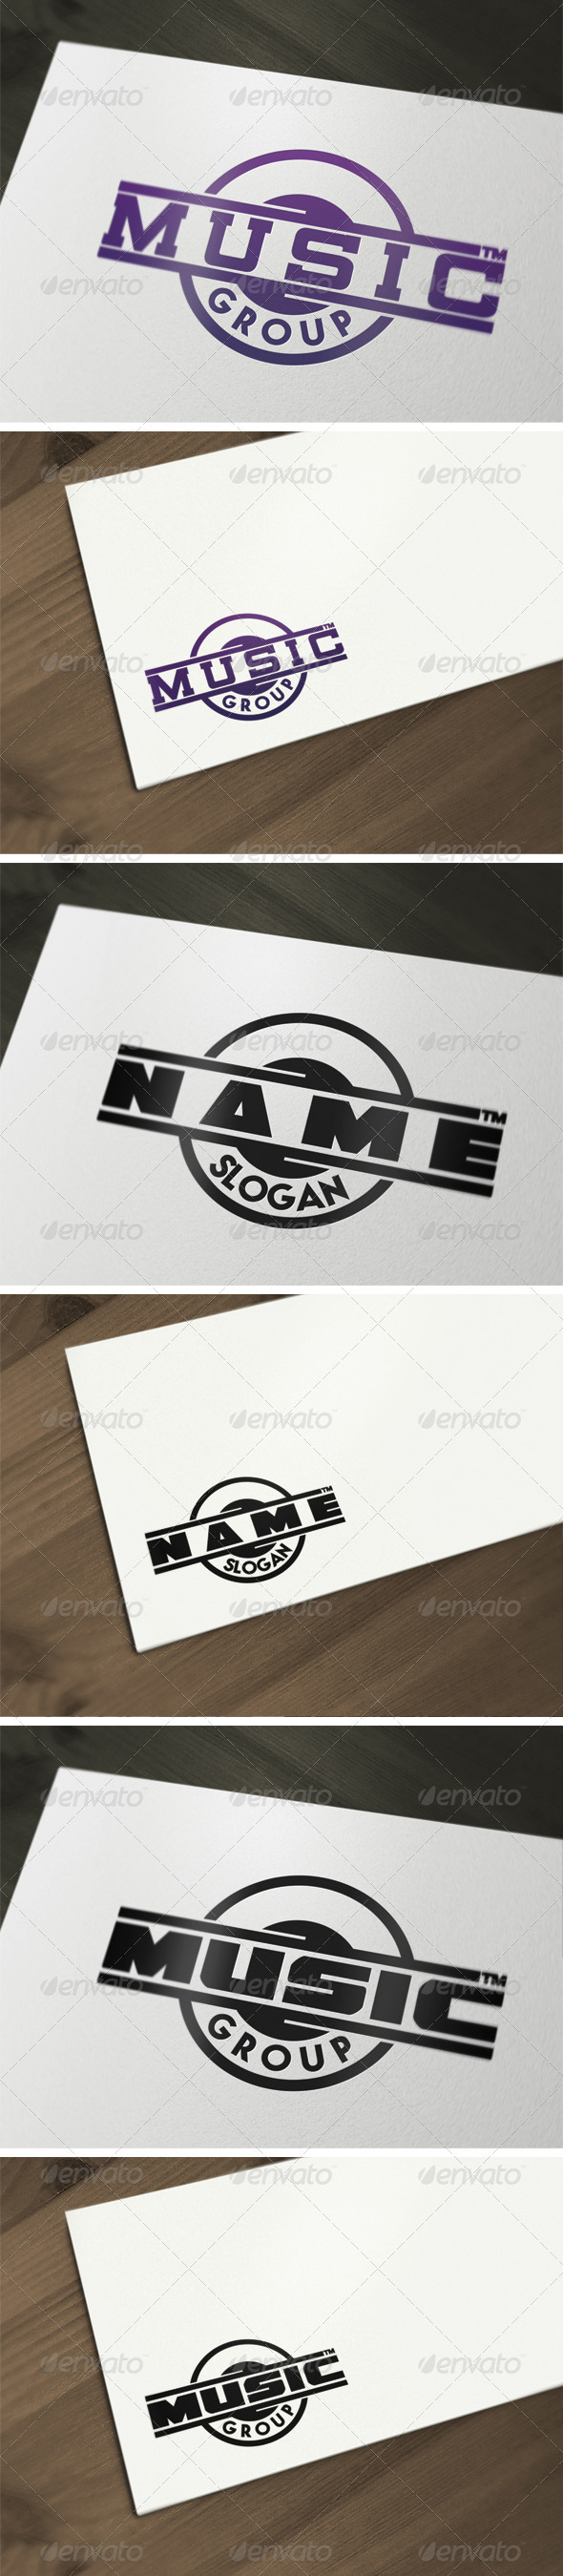 Music Group Logo Template V2 - Vector Abstract